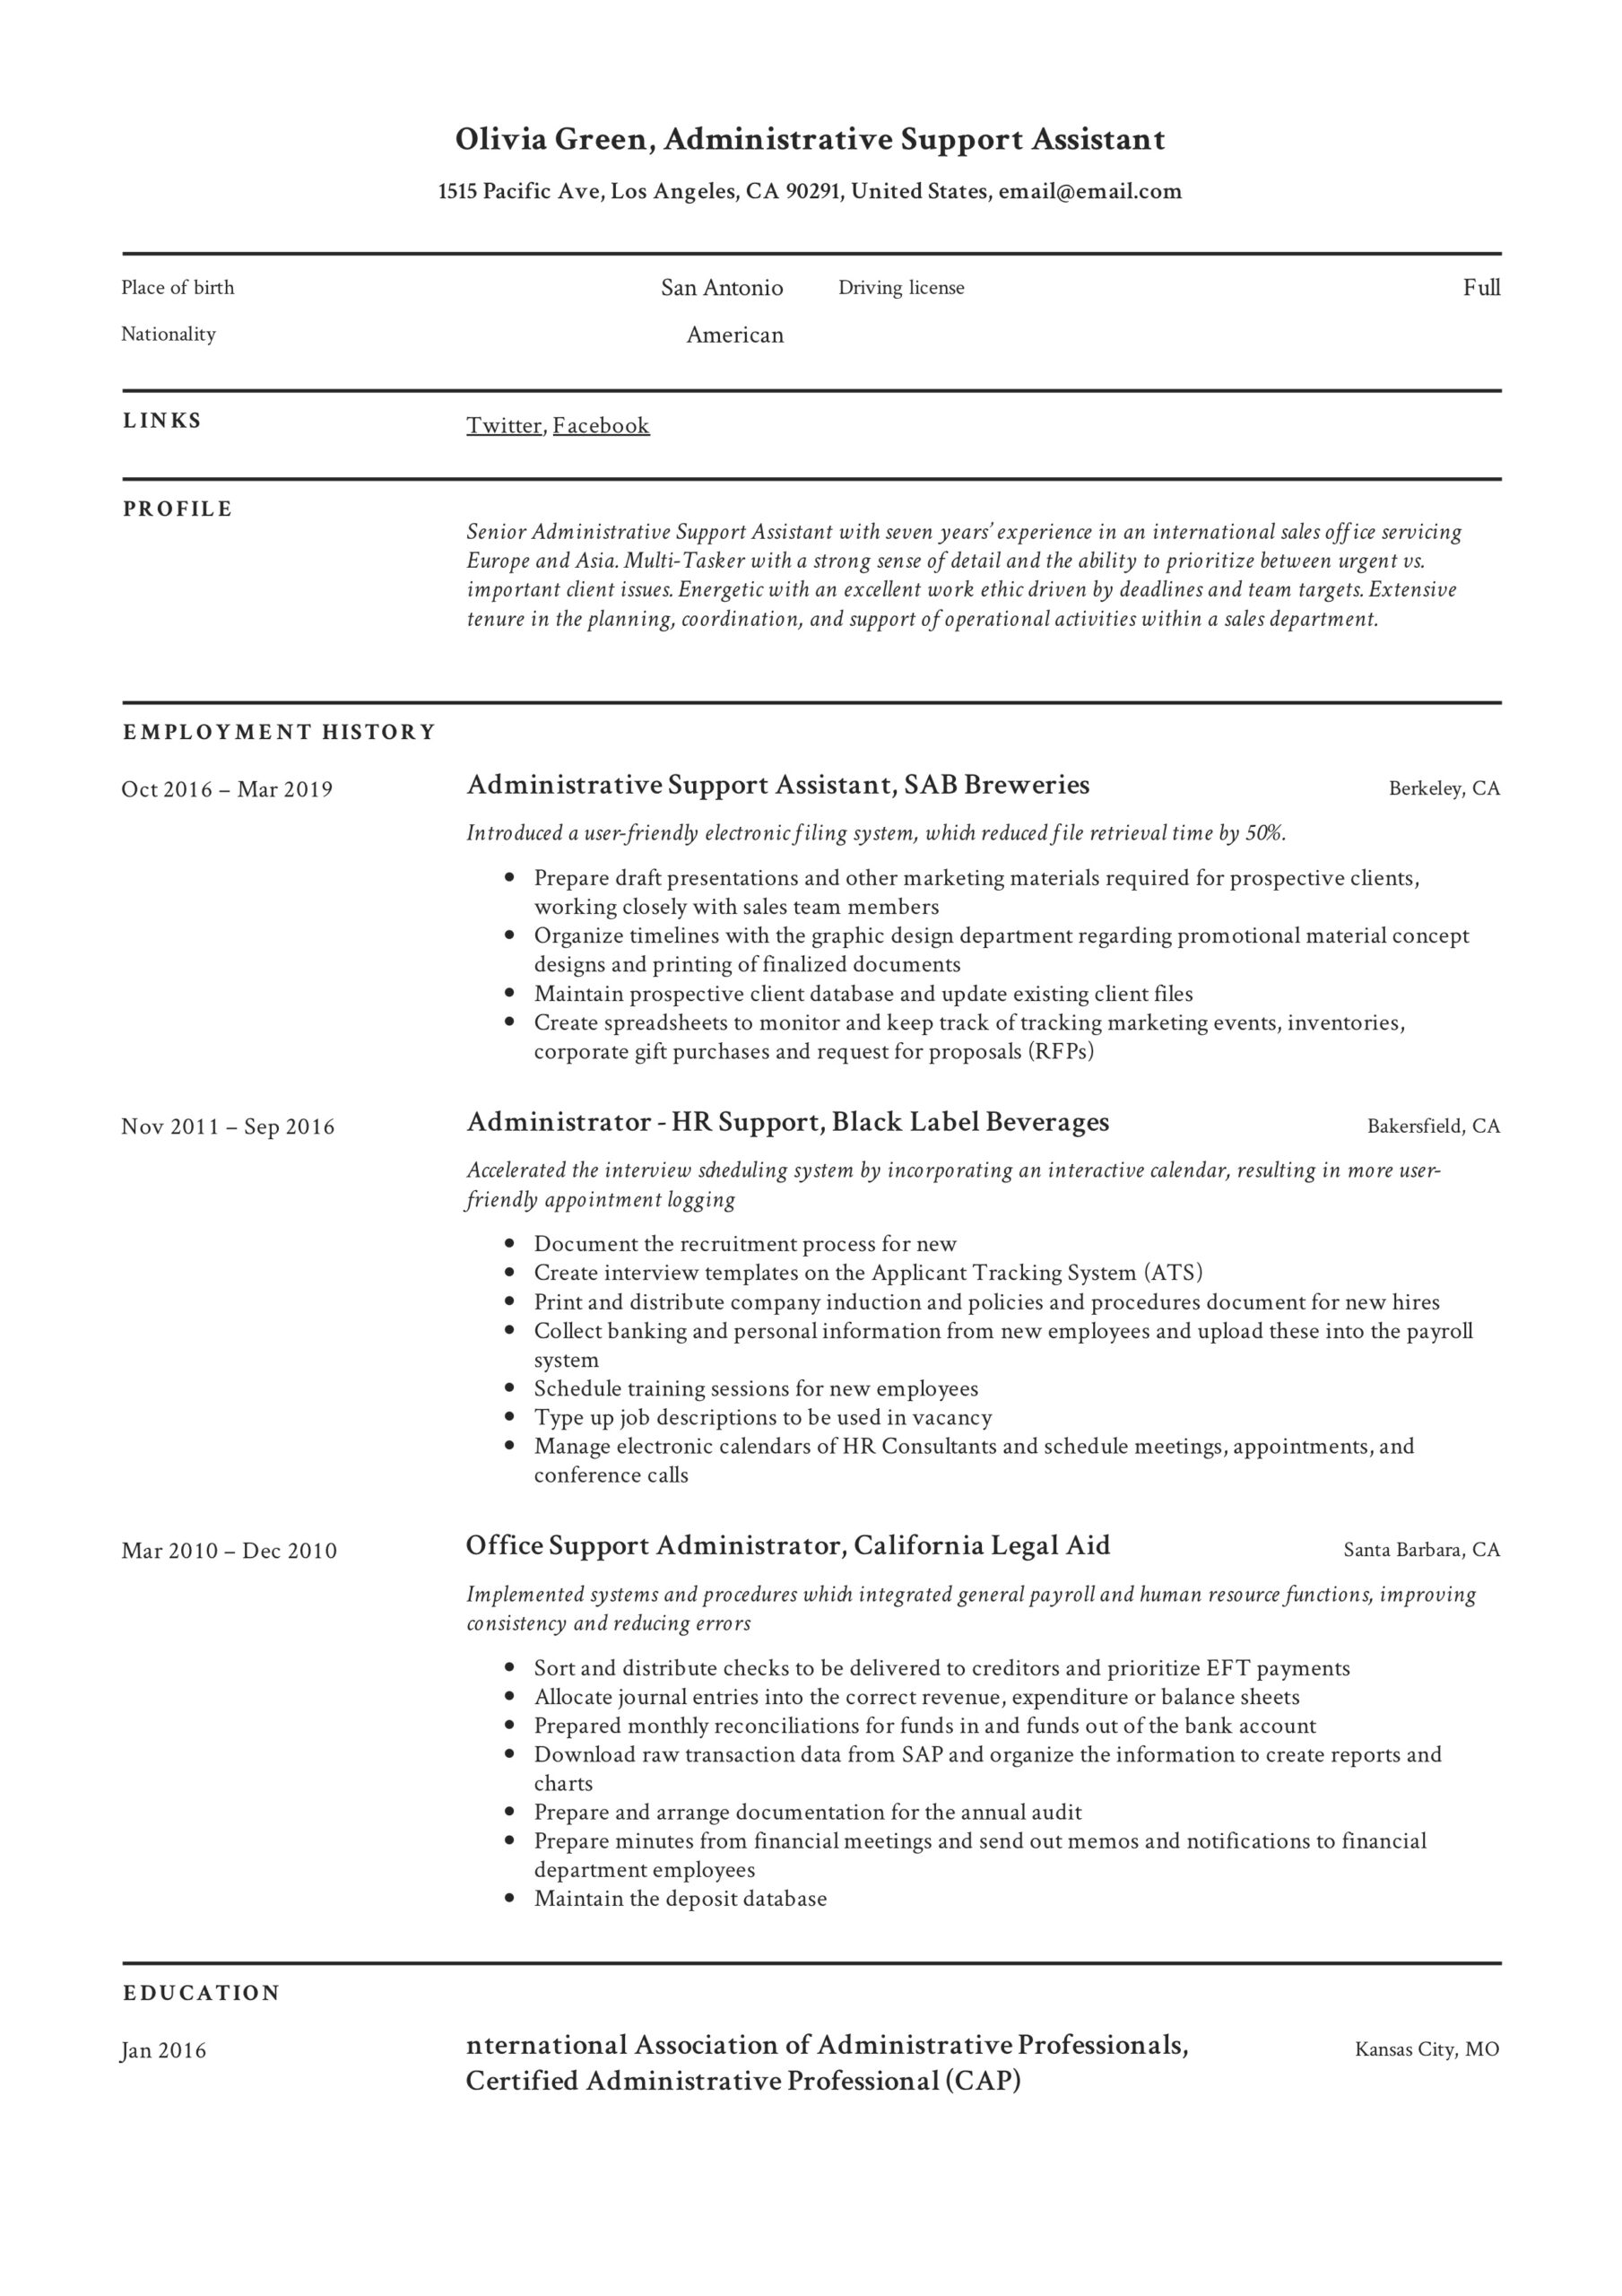 administrative support assistant resume guide pdf resumes title olivia german format Resume Administrative Assistant Resume Title